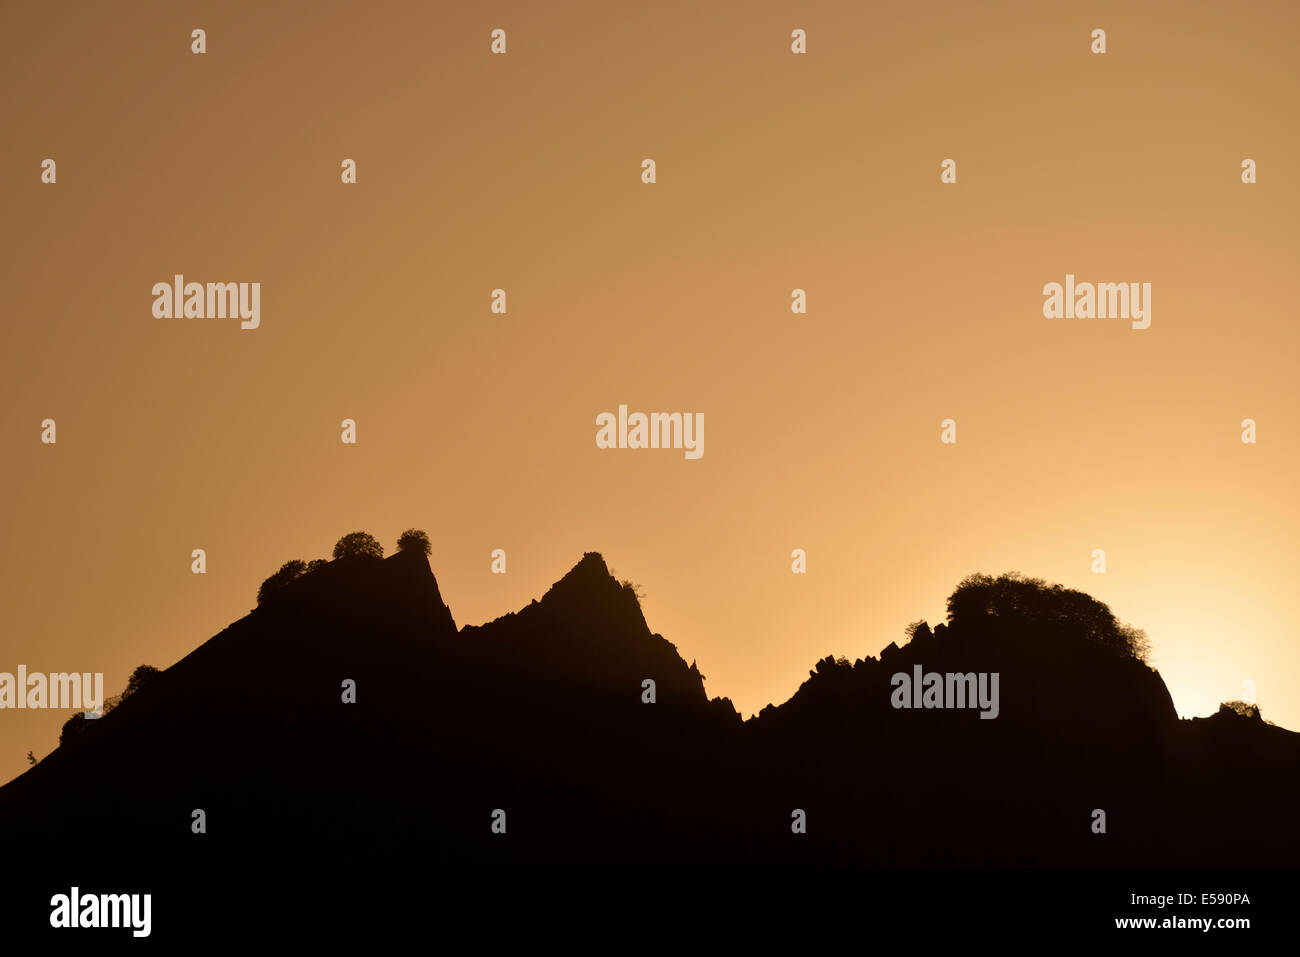 Sunset over the mountains near the village of Lahic, Caucasus Mountains, Azerbaijan - Stock Image